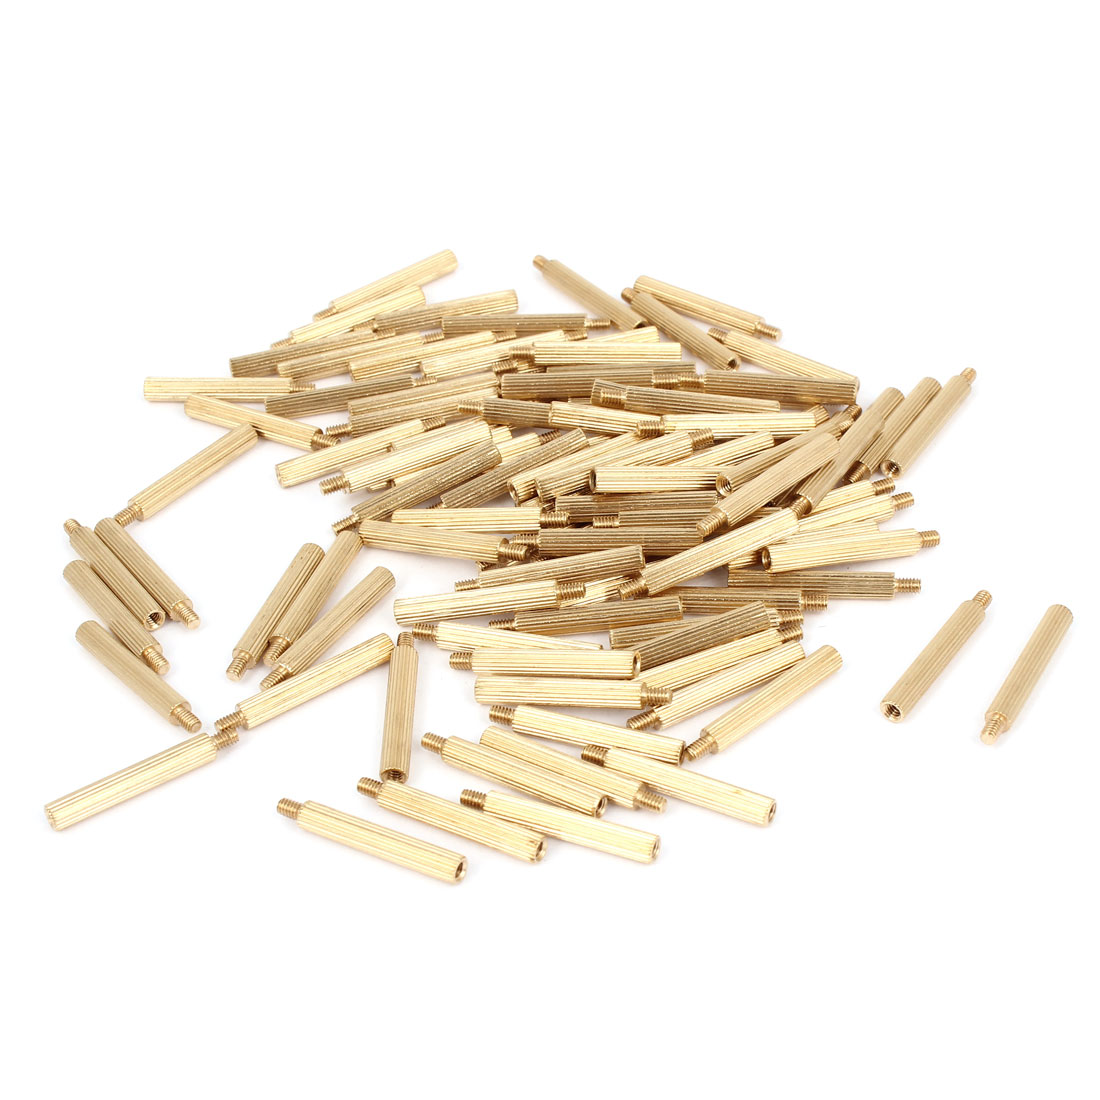 100 Pcs M2 Female Thread Cylindrical Brass Stand-off Support M2x19mm